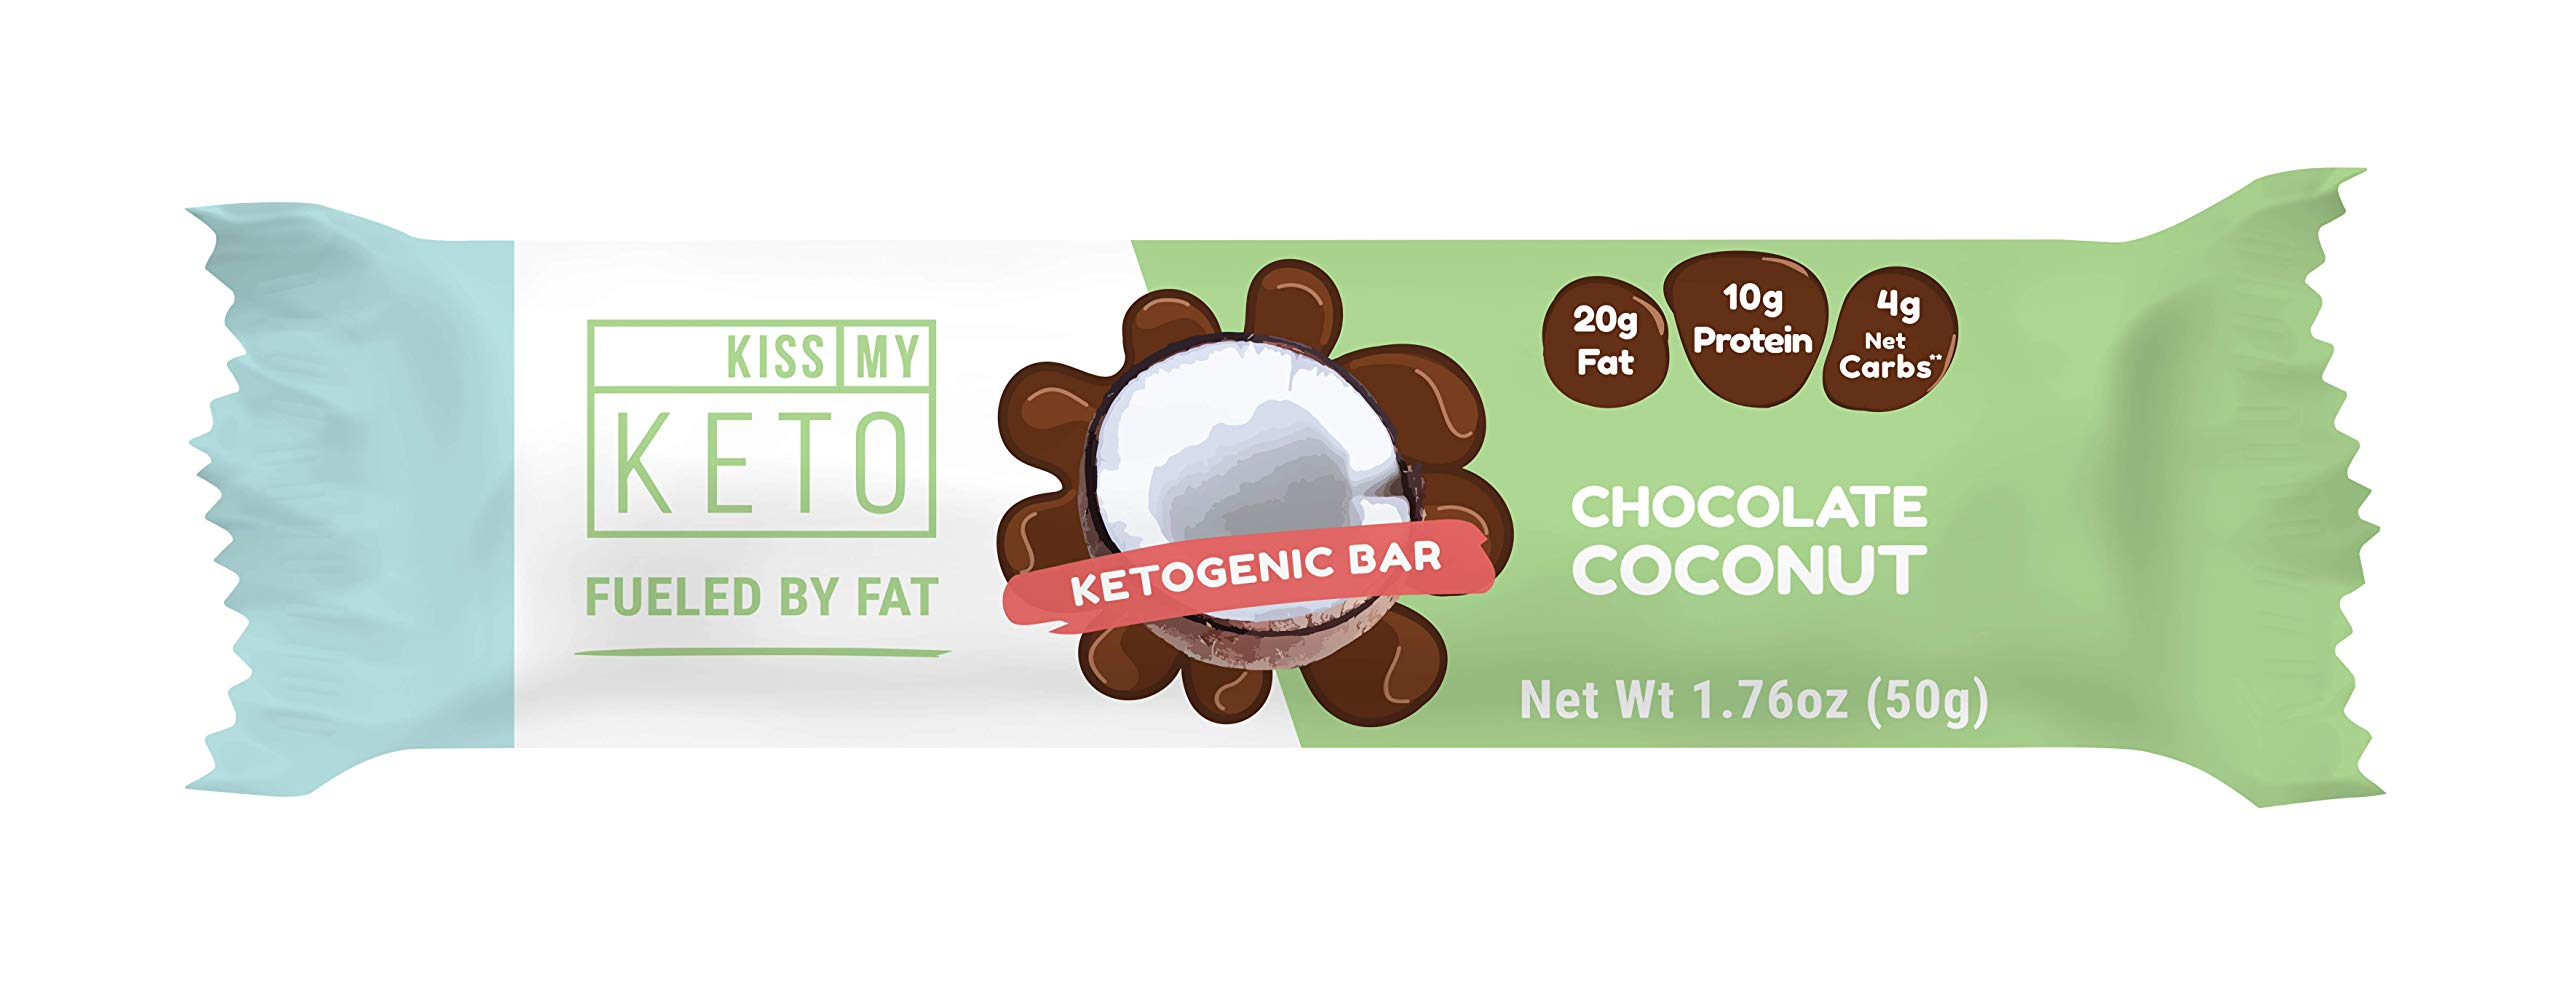 Kiss My Keto Snacks Keto Bars - Keto Chocolate Coconut (3 Pack, 36 Bars), Nutritional Keto Food Bars, Paleo, Low Carb/Glycemic Keto Friendly Foods, All Natural On-The-Go Snacks, 4g Net Carbs by Kiss My Keto (Image #4)